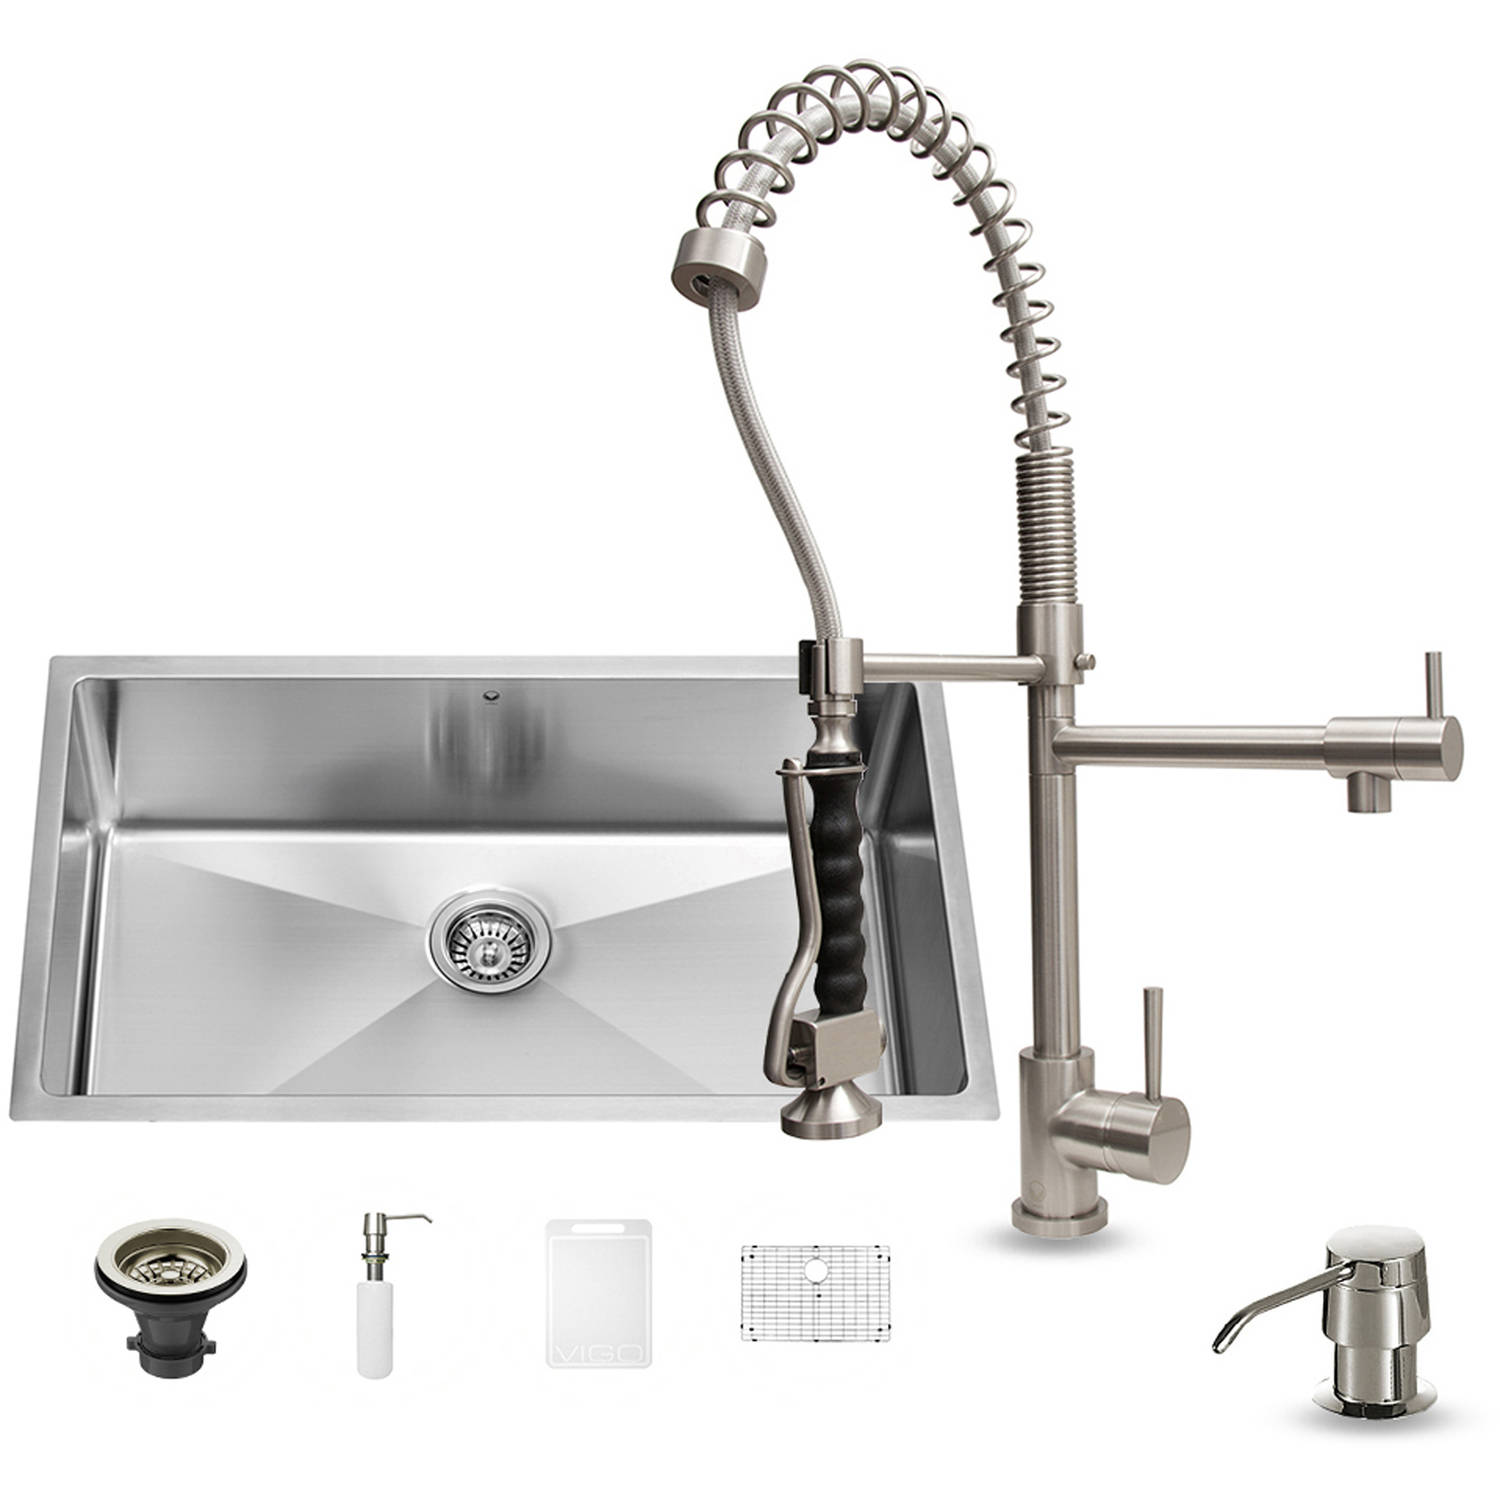 "Vigo All-in-One 32"" Undermount Stainless Steel Kitchen Sink and Faucet Set"